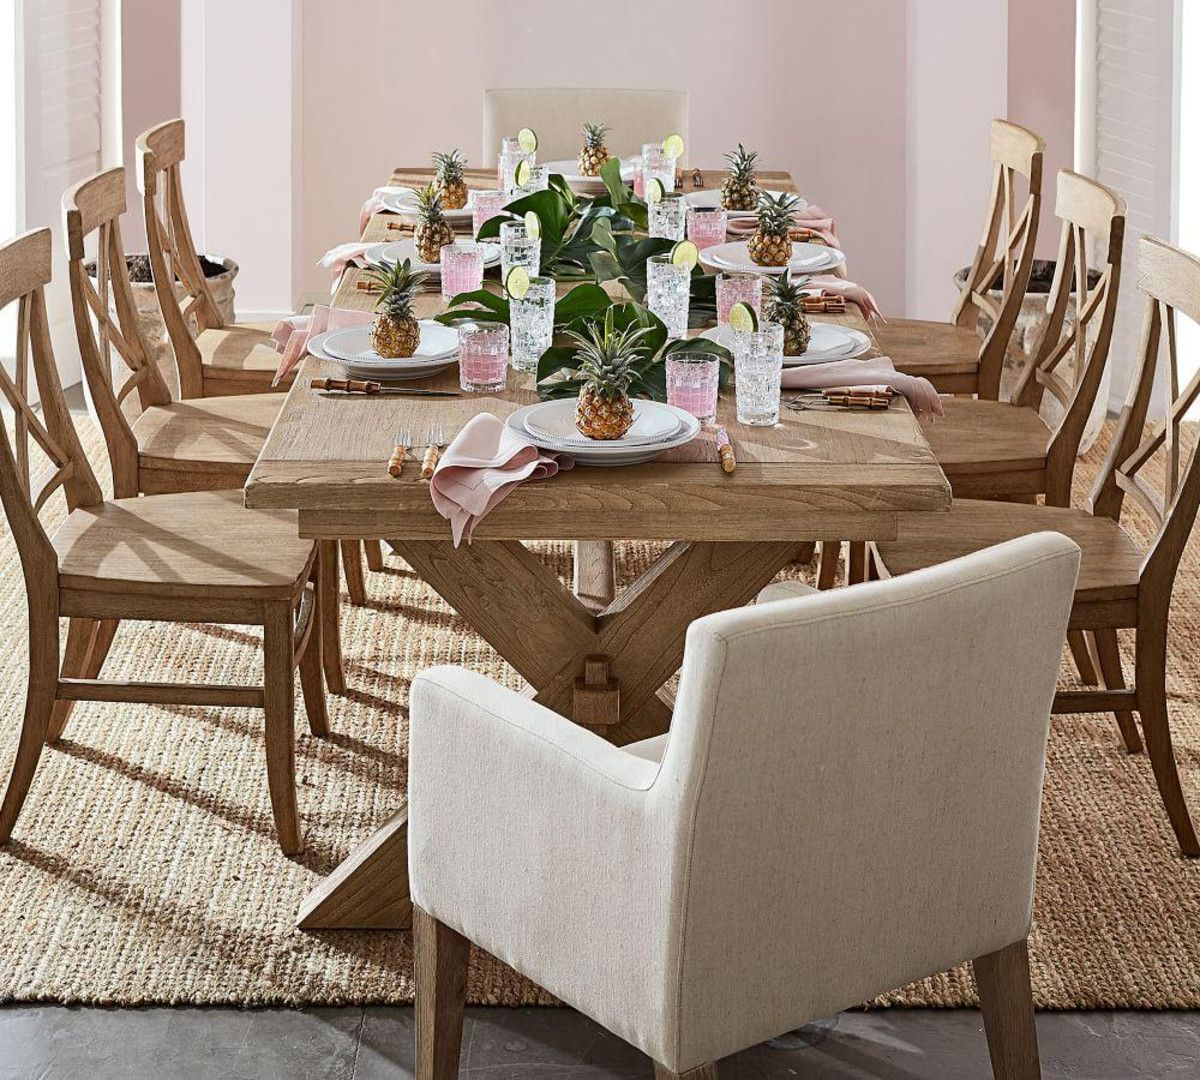 Toscana Extending Dining Table – Seadrift In 2019 Inside Most Popular Seadrift Toscana Dining Tables (View 2 of 25)